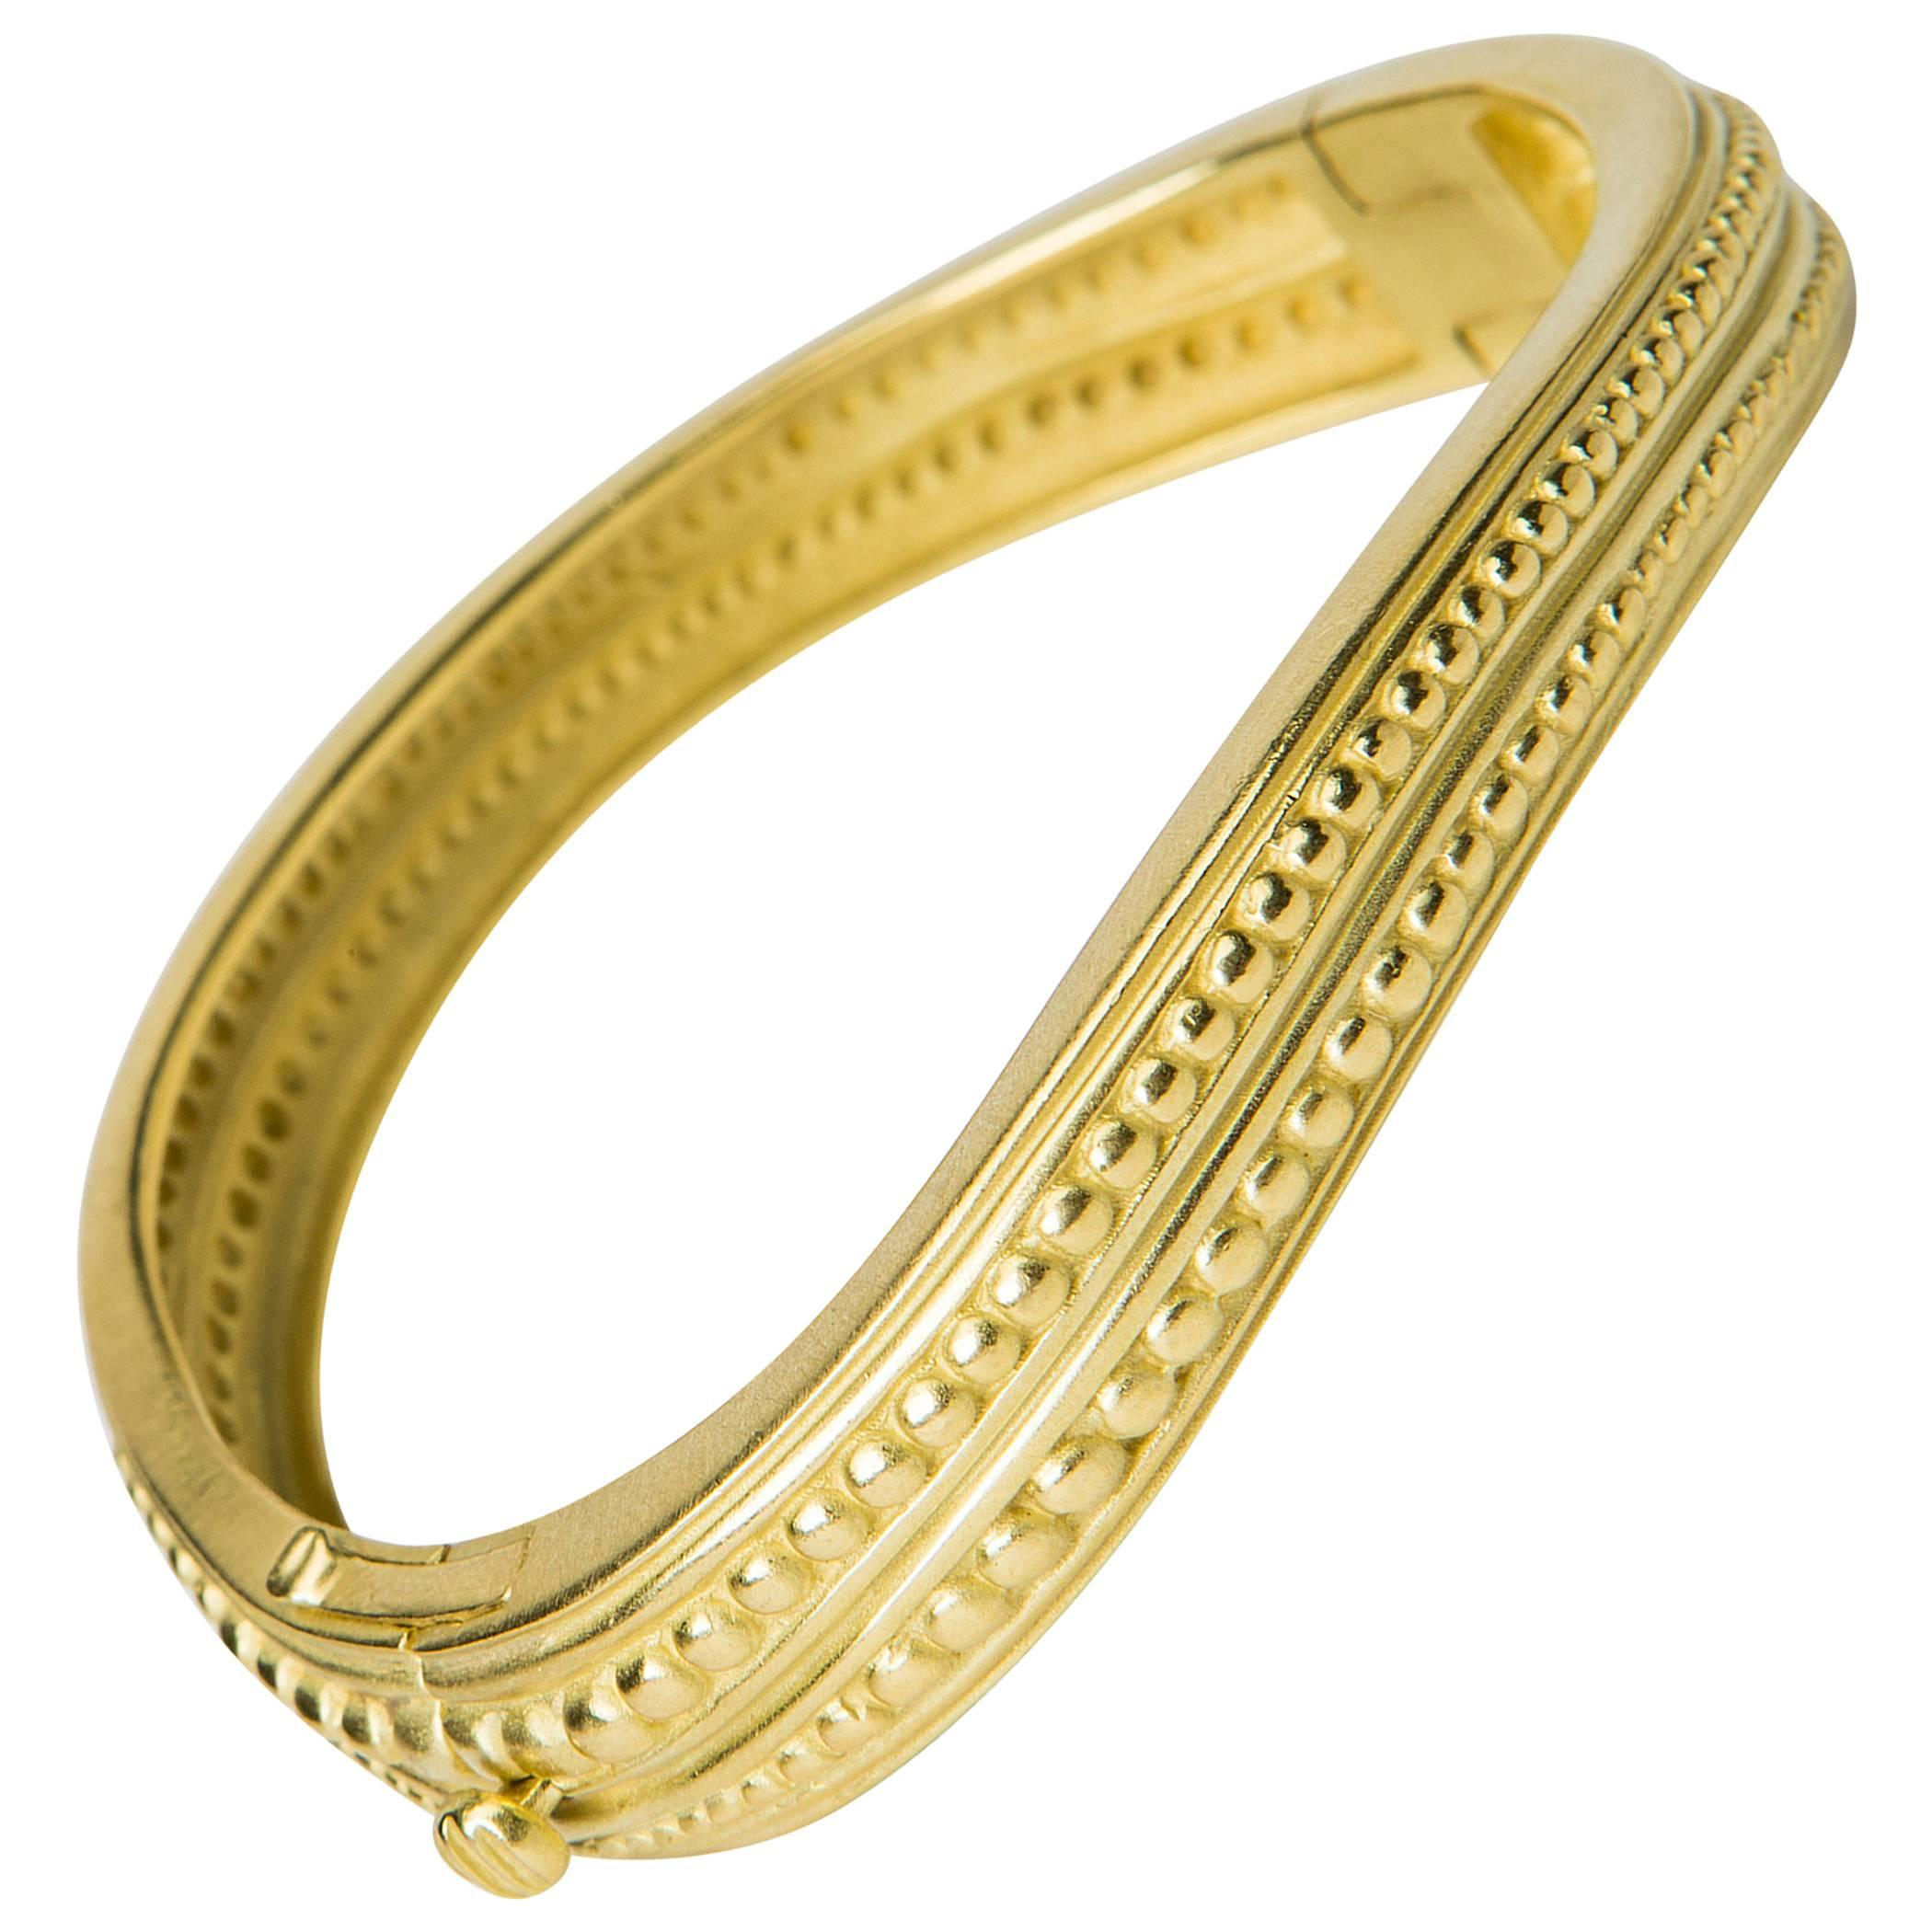 bangles produkt modern selected julie jewelry by